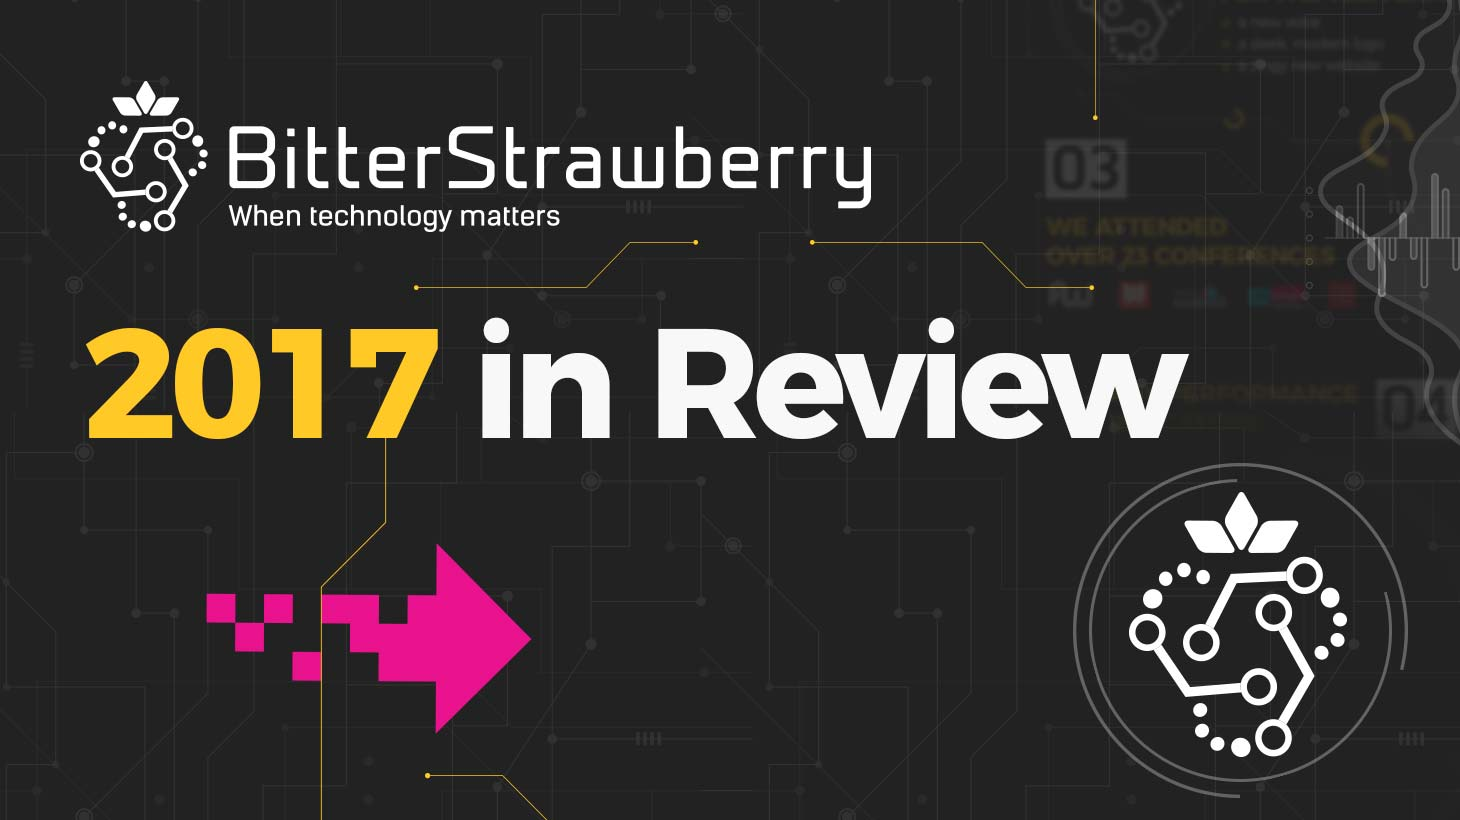 BitterStrawberry - 2017 in Review